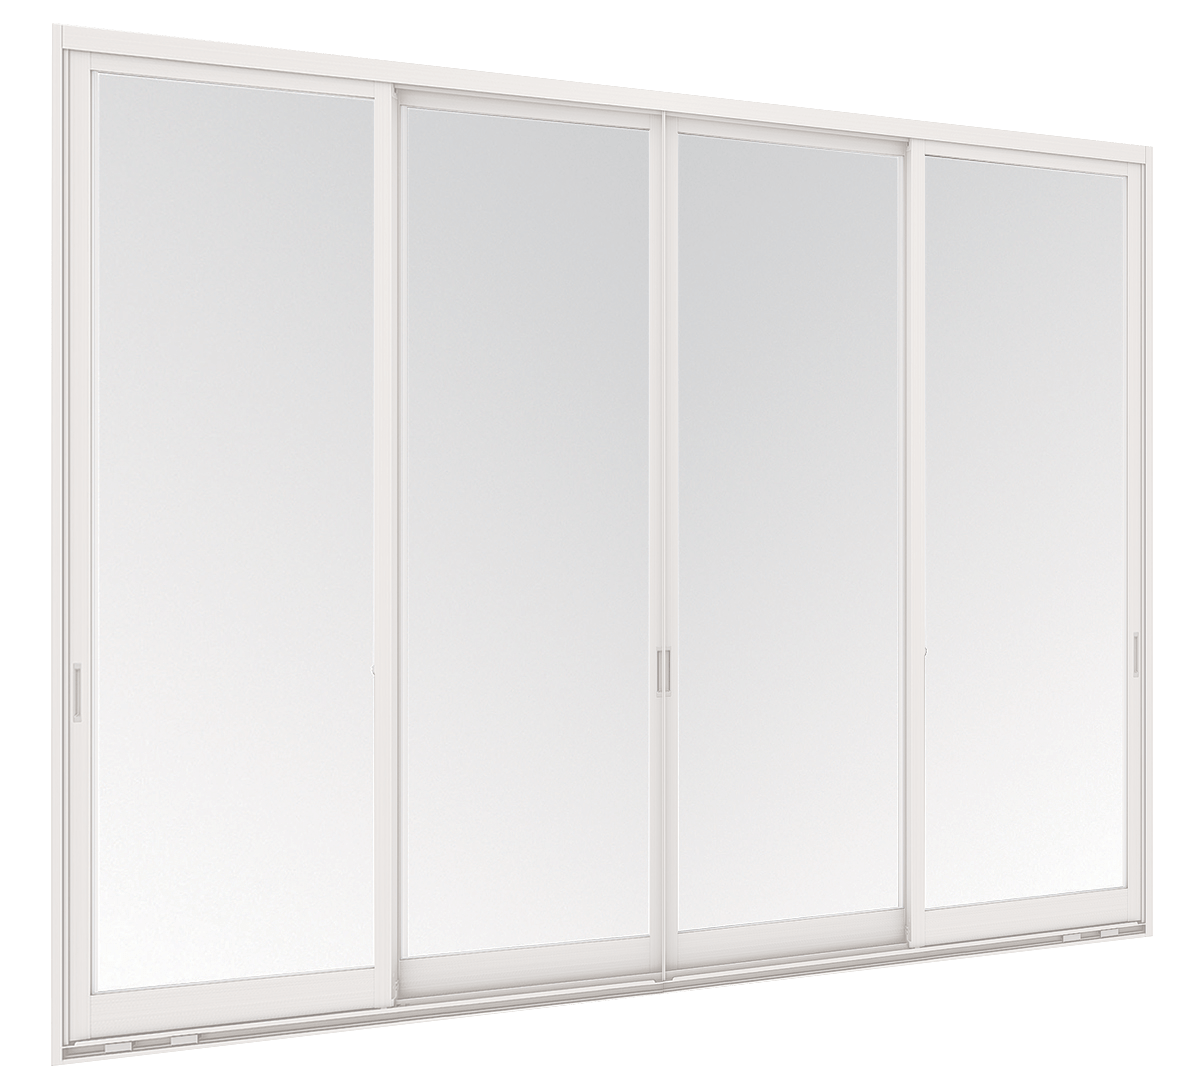 Aluminium Entrance sliding door (4 panels on 2 tracks)